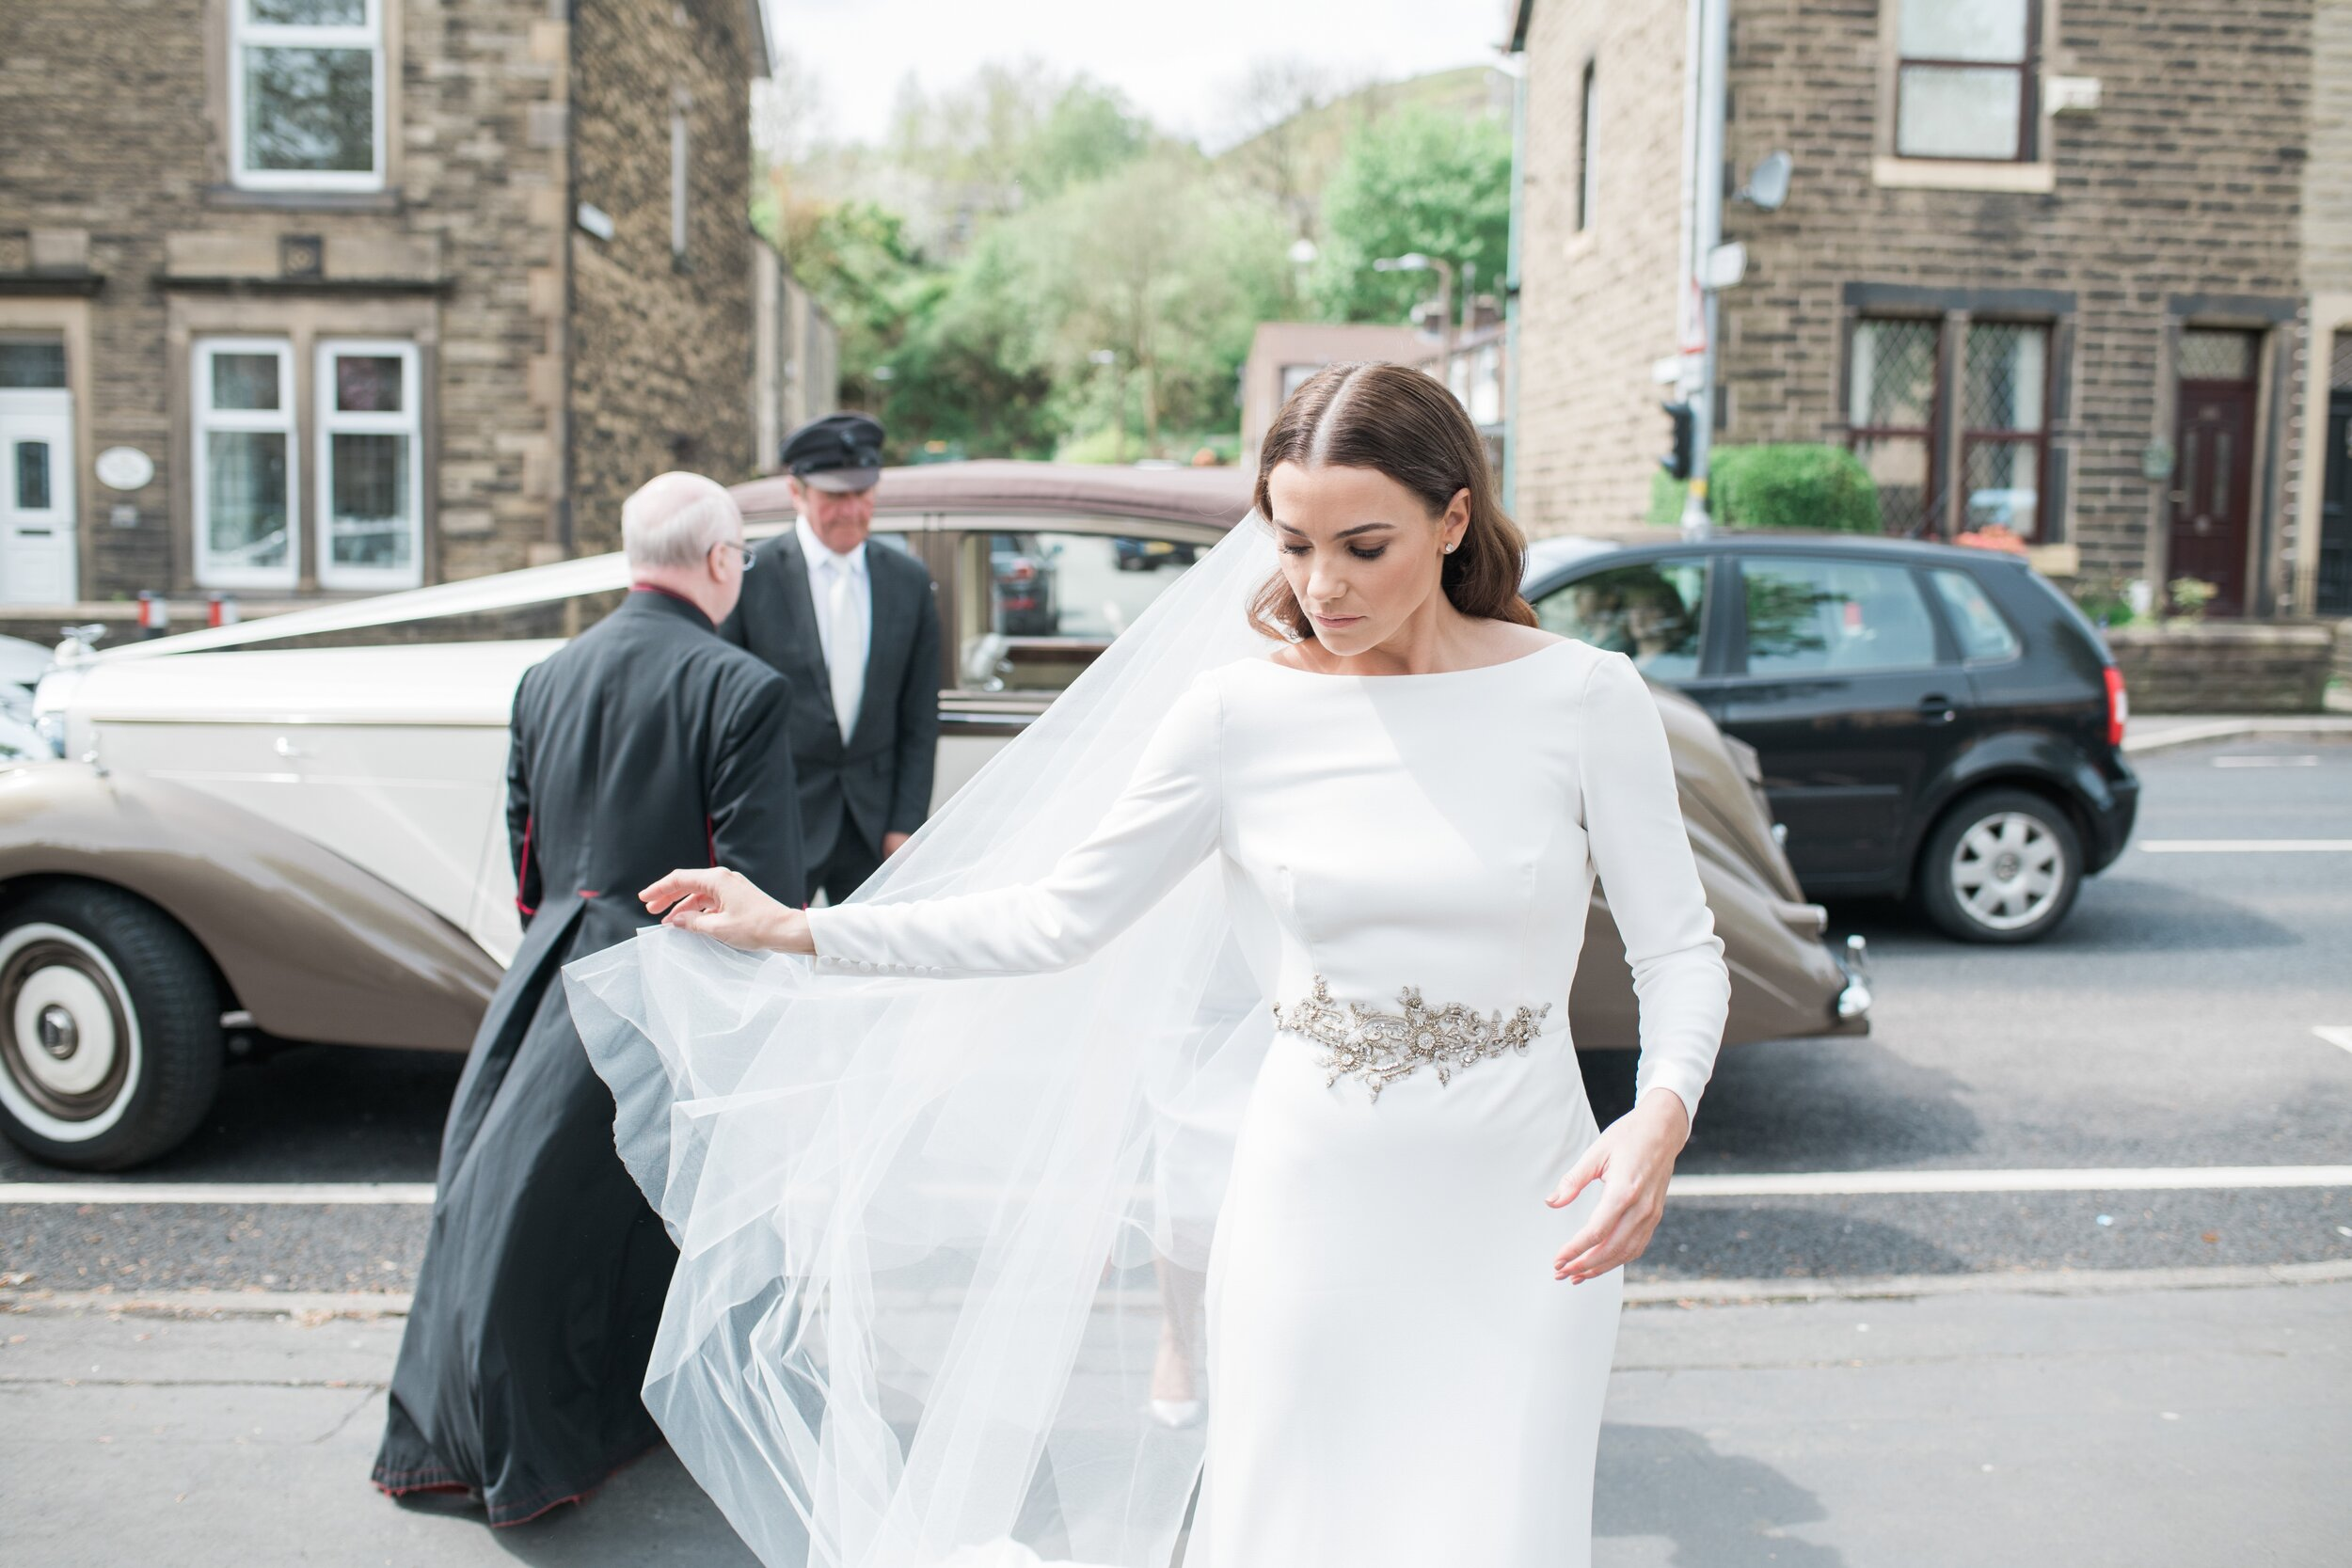 Bridal Alterations - If you already have your dress but are looking for alterations or modifications, please visit our sister site…